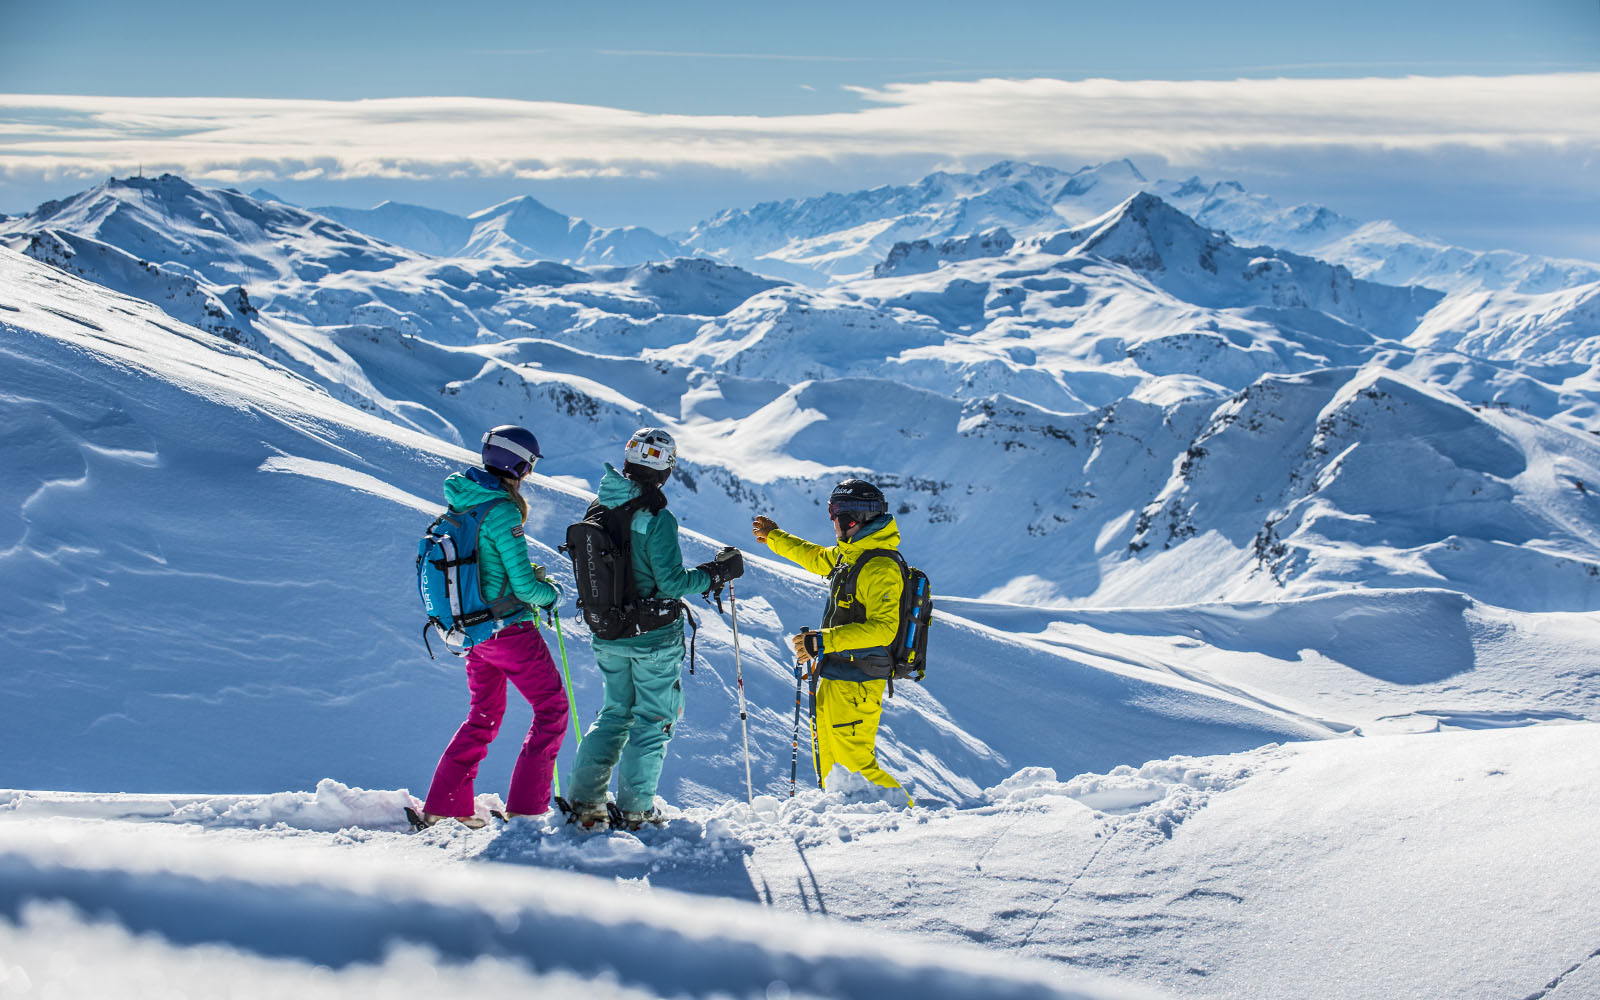 New Generation Ski School